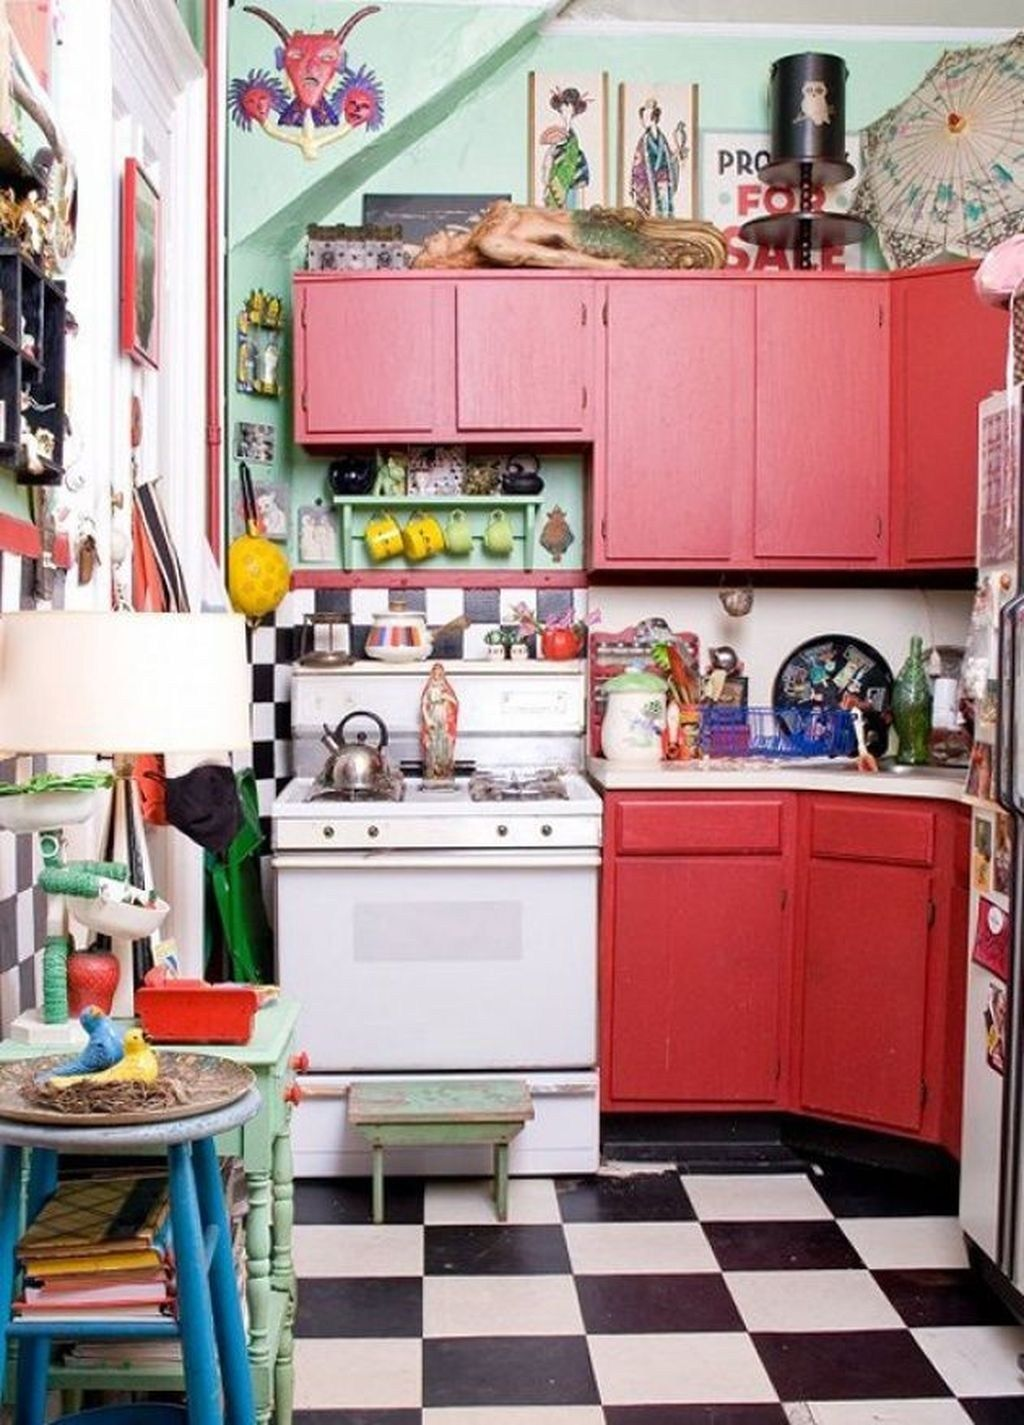 Creative Small Kitchen Design Ideas For Your Apartment 5  Funky